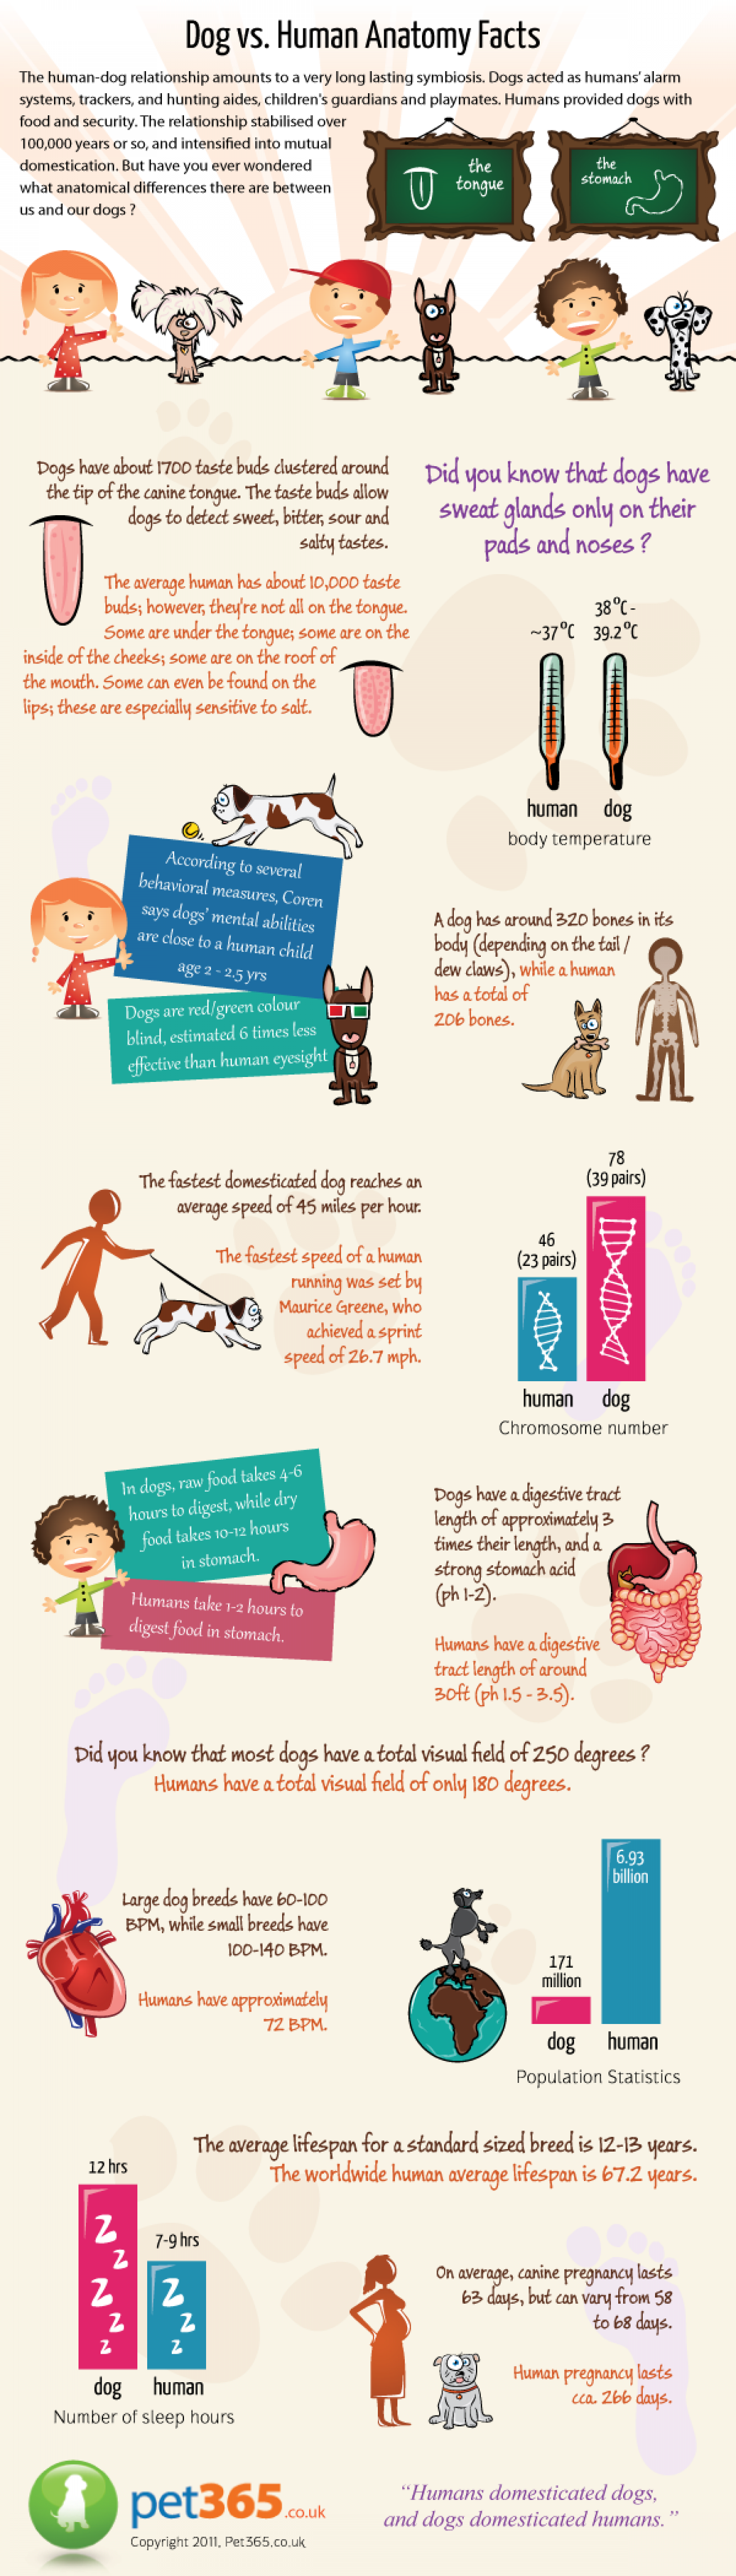 Dog vs Human Anatomy Facts Infographic